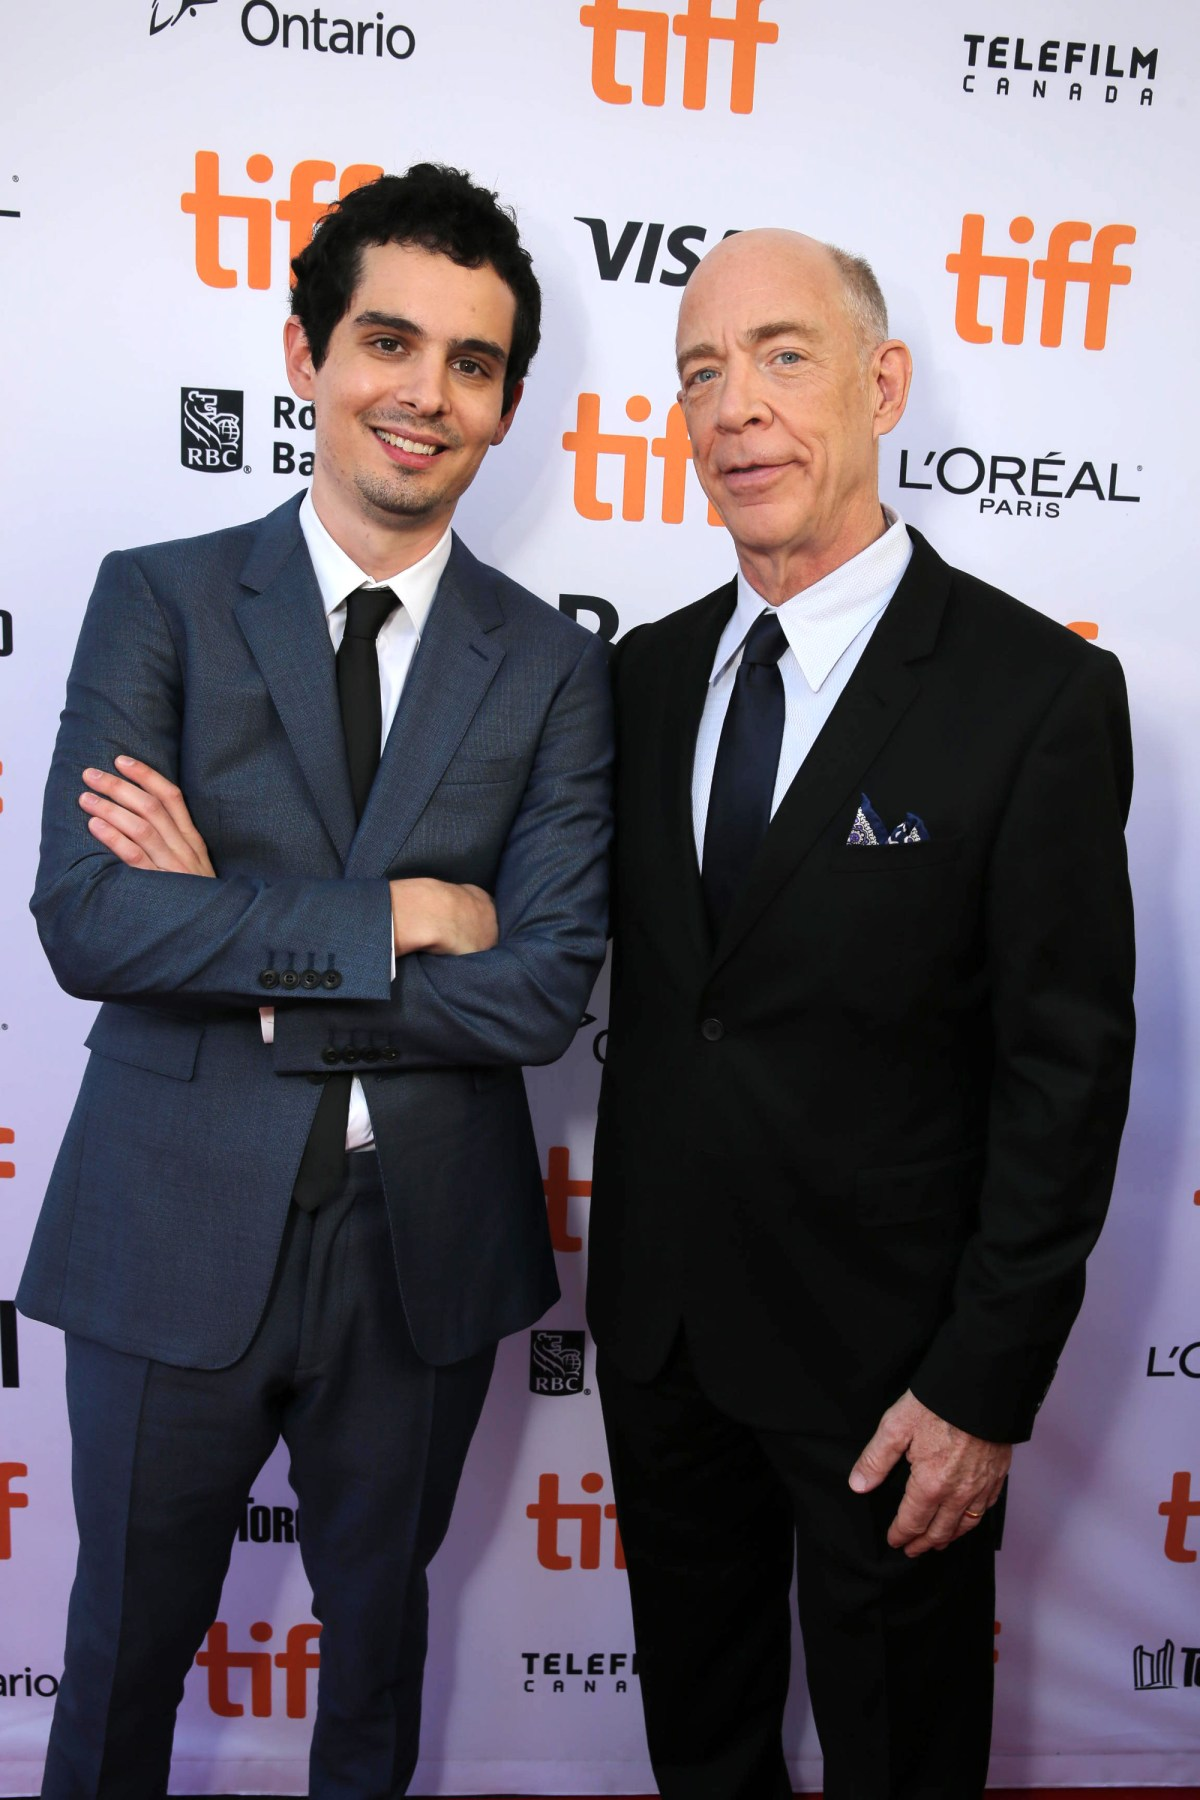 """Writer/Director Damien Chazelle and J.K. Simmons seen at Summit Entertainment's """"La La Land"""" premiere at the 2016 Toronto International Film Festival on Monday, Sept. 12, 2016, in Toronto. (Photo by Eric Charbonneau/Invision for LionsgateAP Images)"""